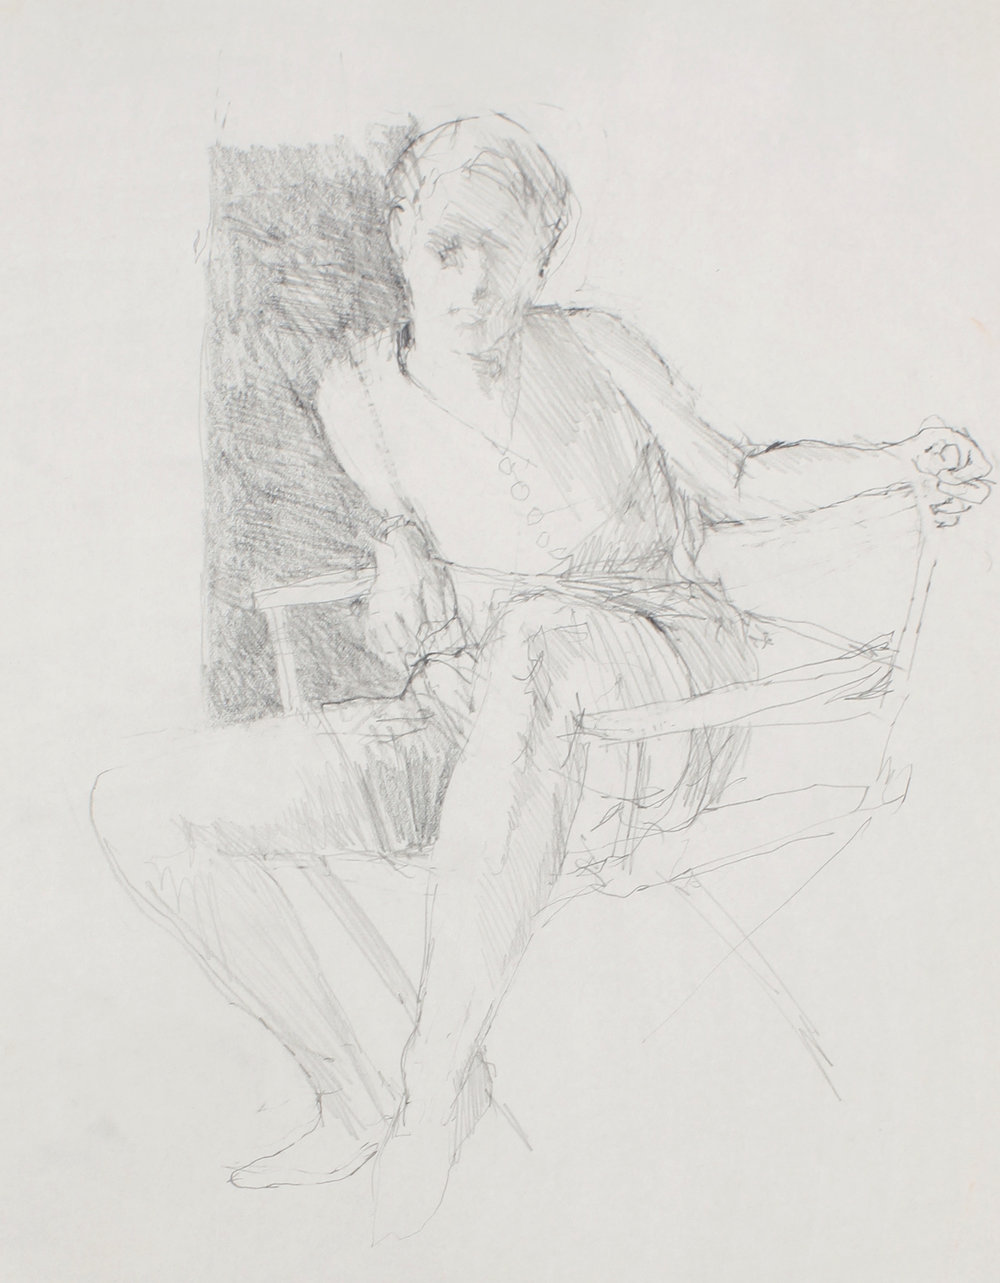 1989_Study_for_Seated_Girl_(Sophie_Facing_Forwards)_pencil_on_paper_15x11in_WPF621.jpg